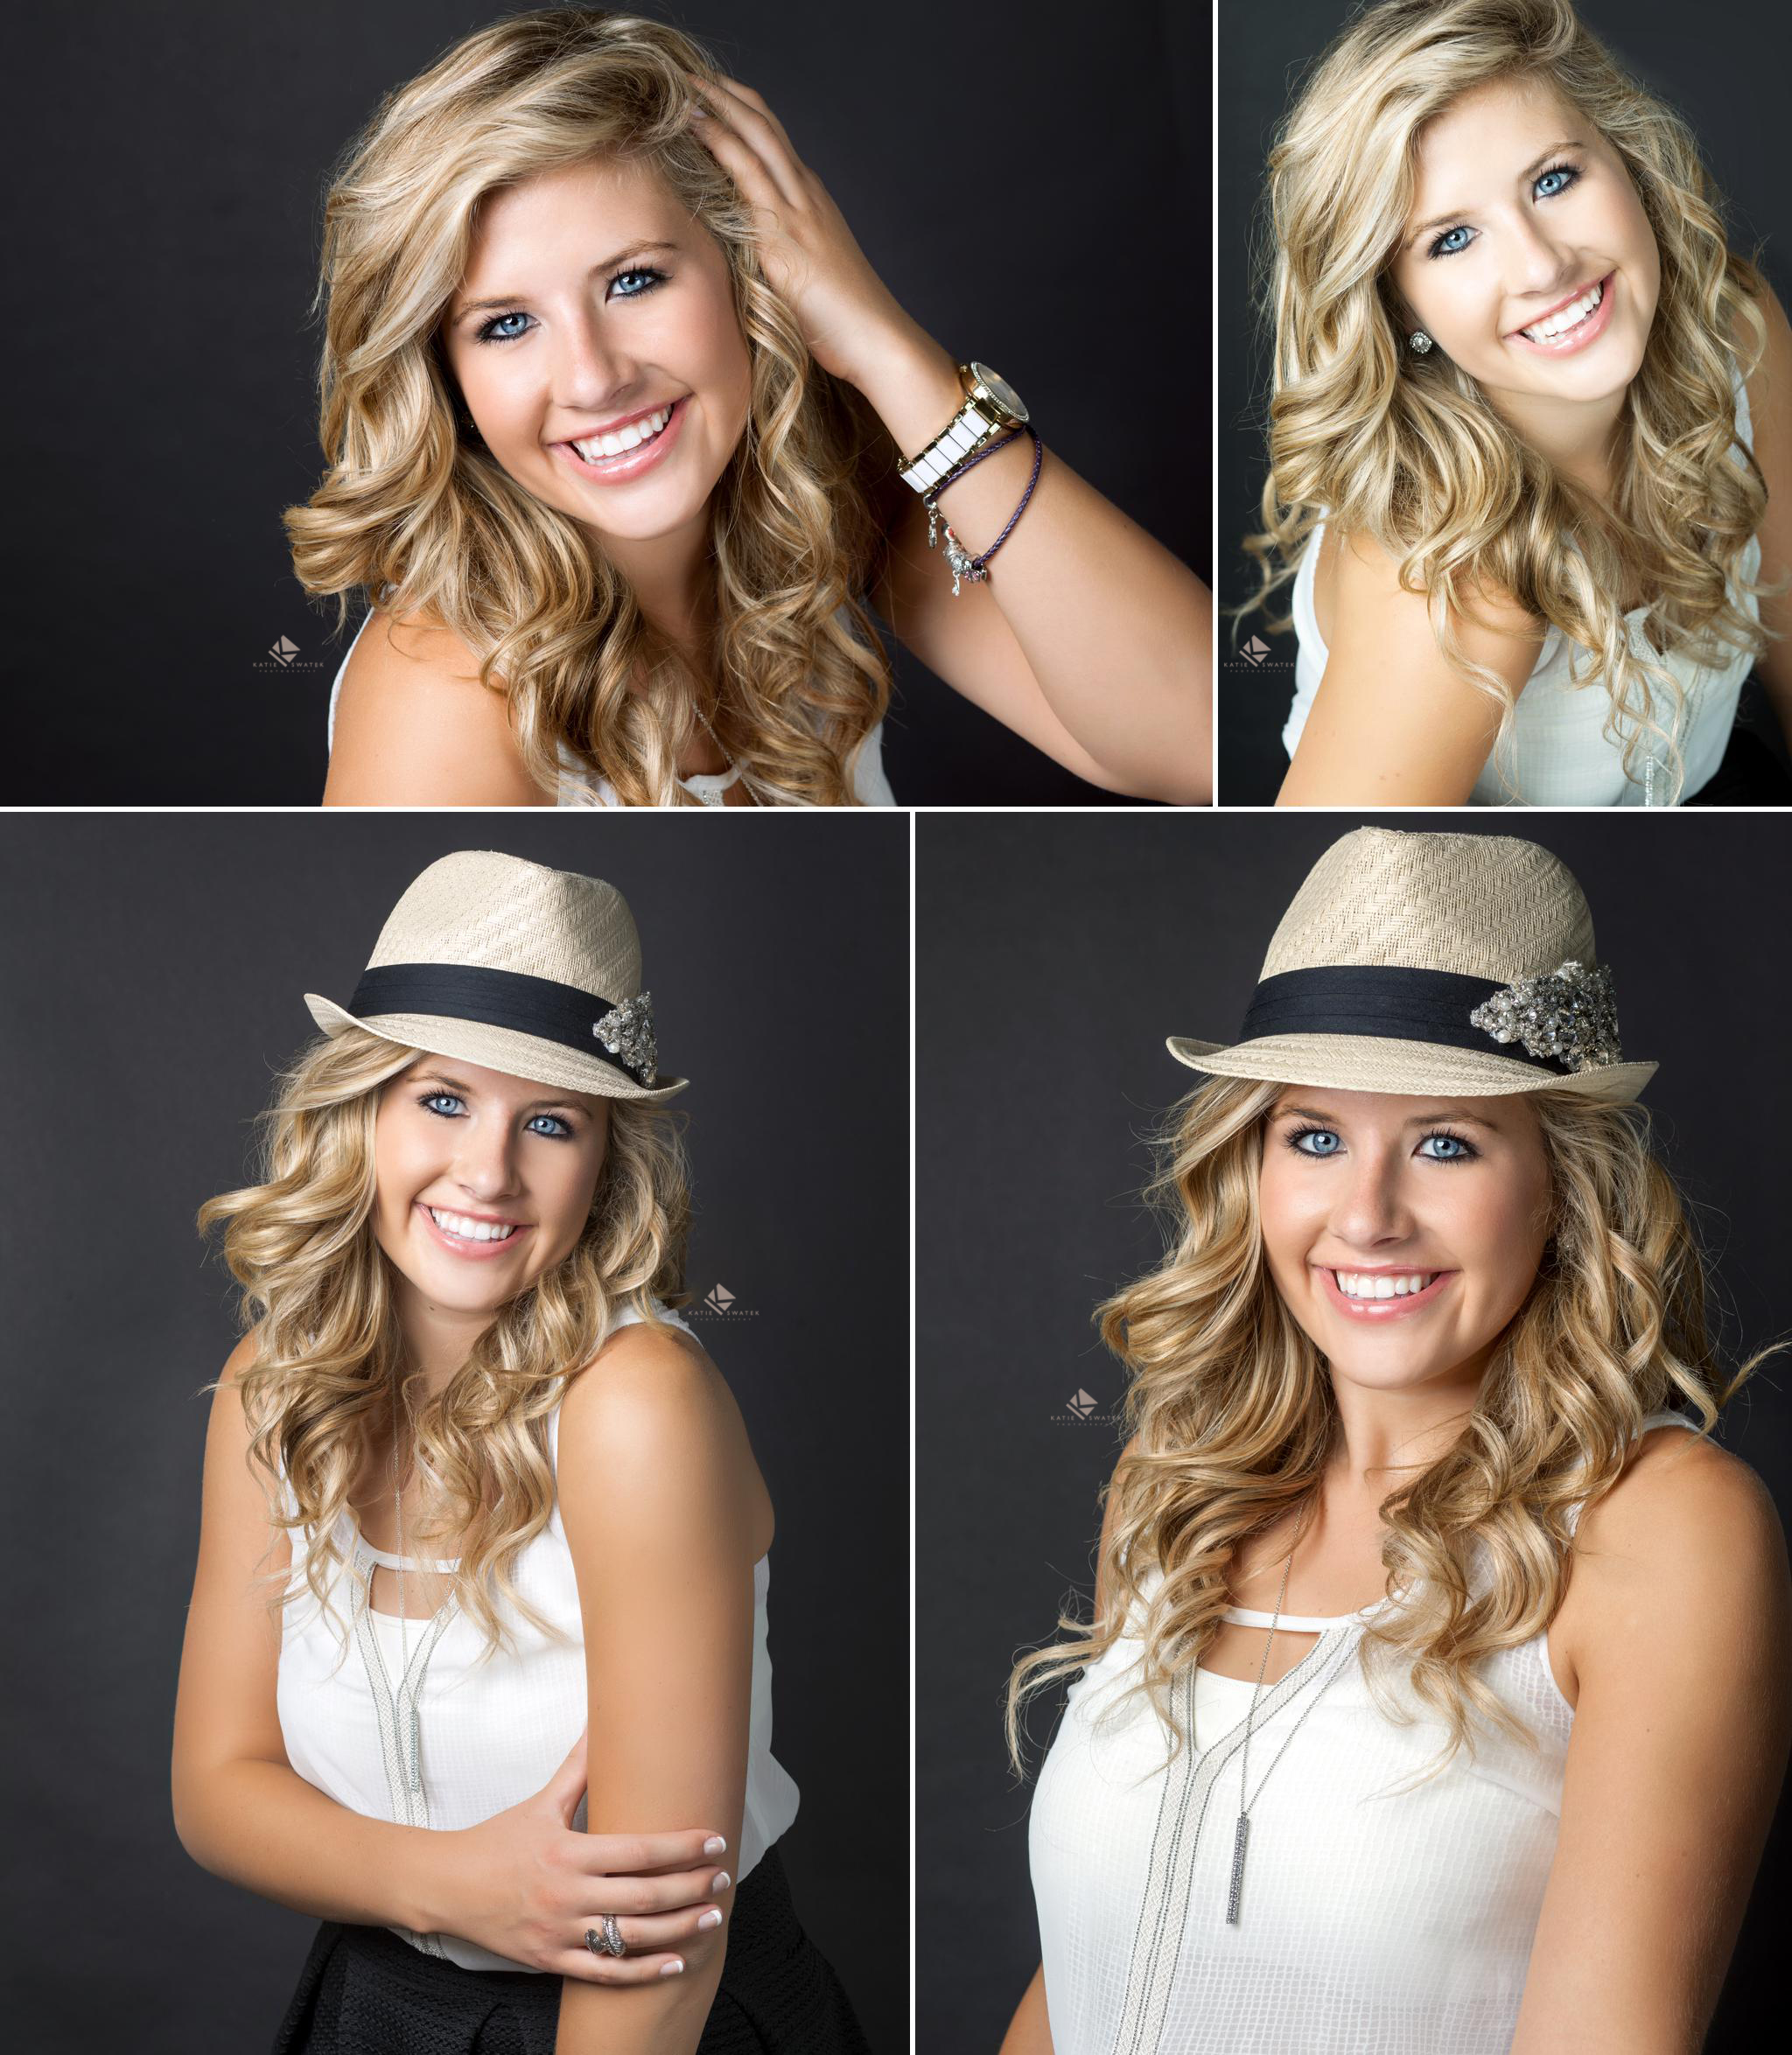 blonde senior girl in a white shirt and fedora photographed in a studio on a black backdrop